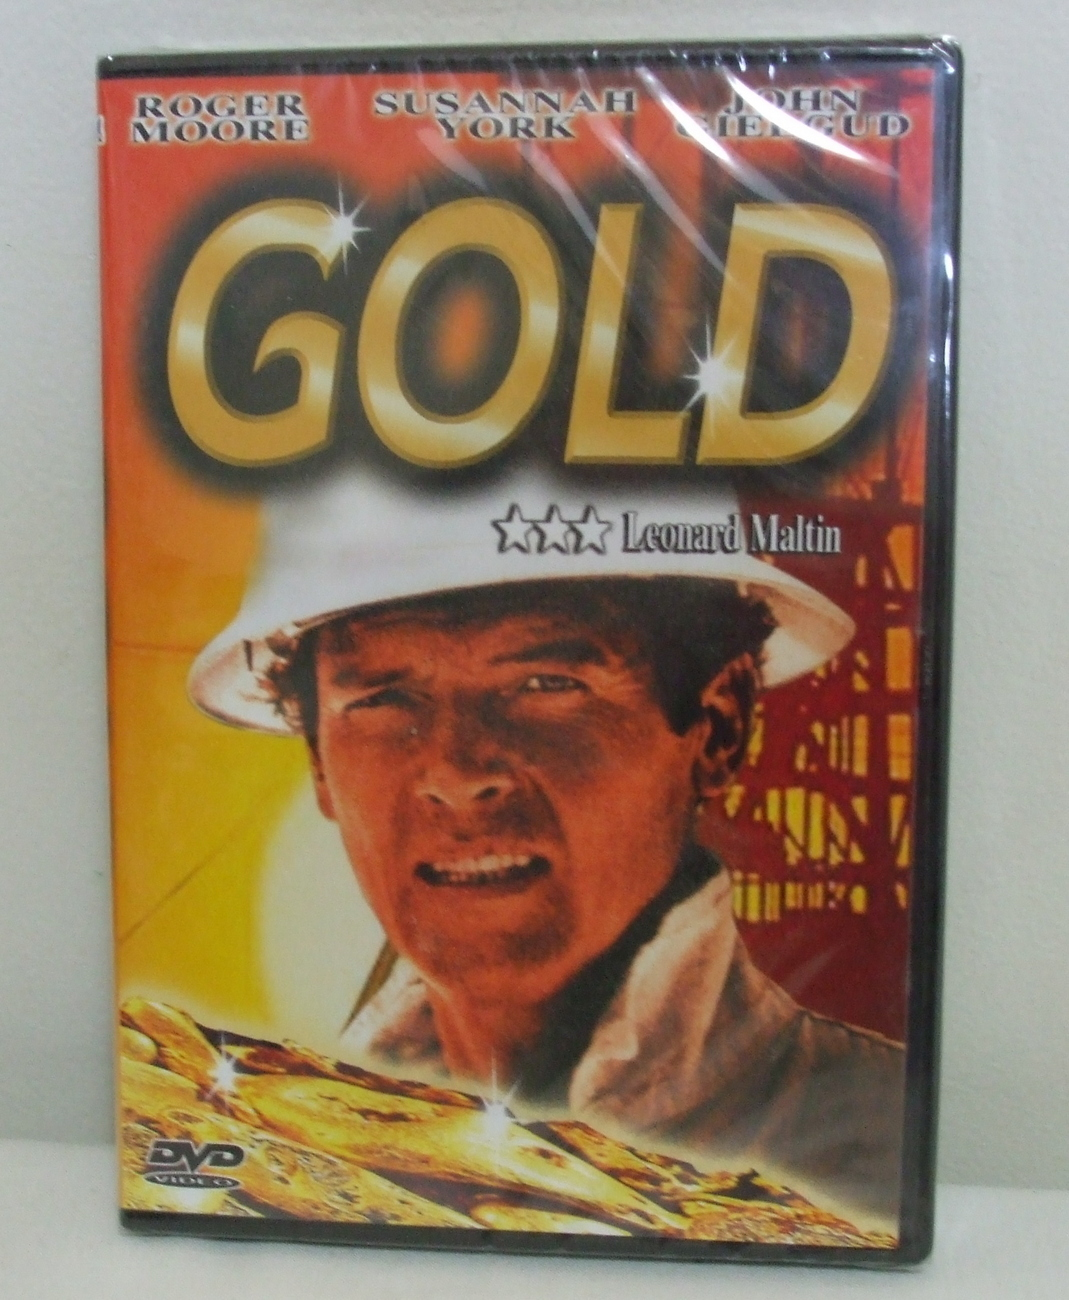 DVD New Sealed Gold Roger Moore and Susannah York